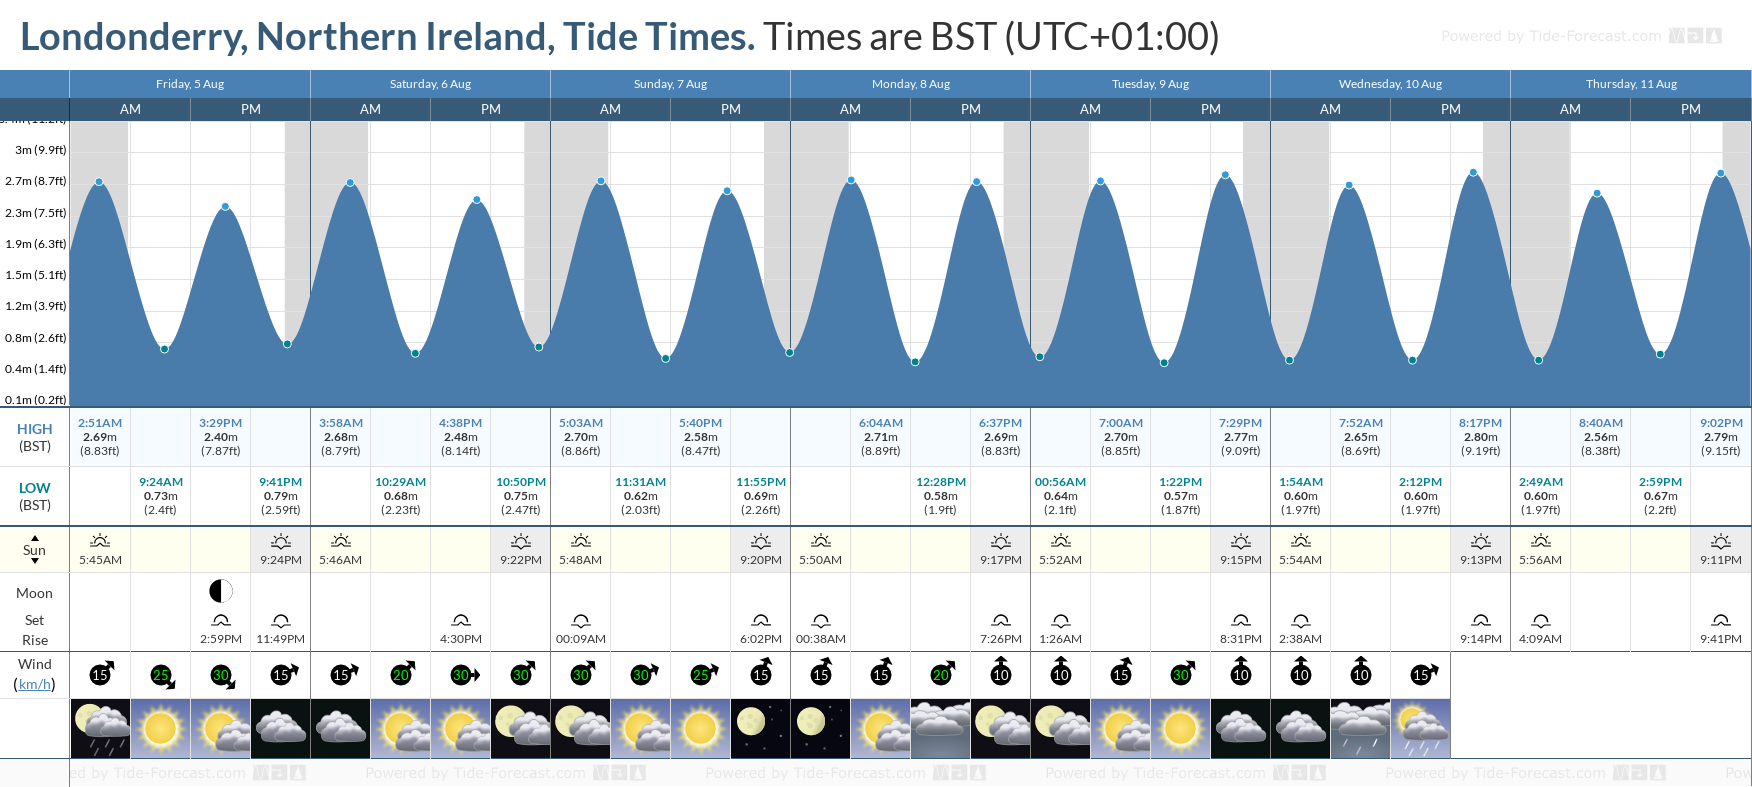 Londonderry, Northern Ireland Tide Chart including high and low tide tide times for the next 7 days